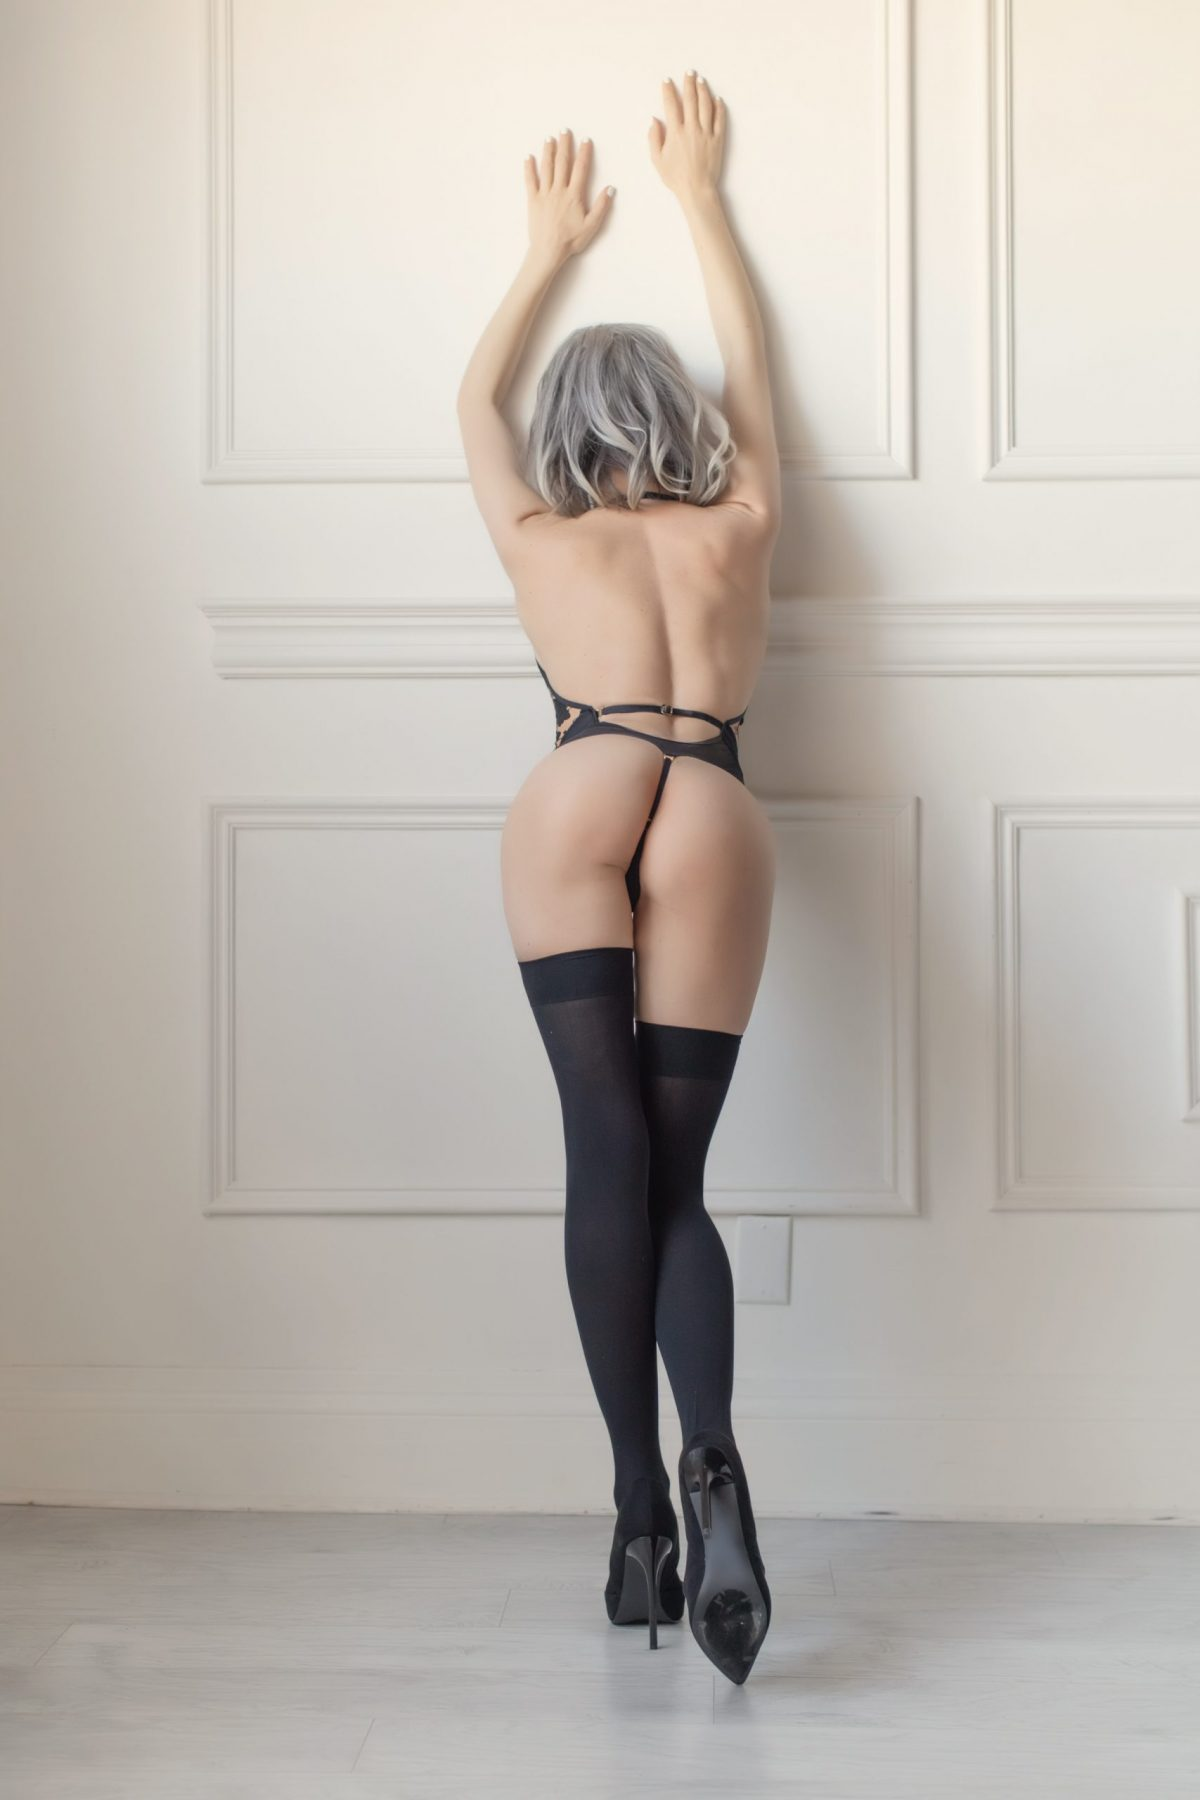 Toronto escorts companion upscale Heather Interests Duo Couple-friendly Non-smoking Age Mature Figure Petite Breasts Natural Hair Blonde Ethnicity European Tattoos Small Arrival Video